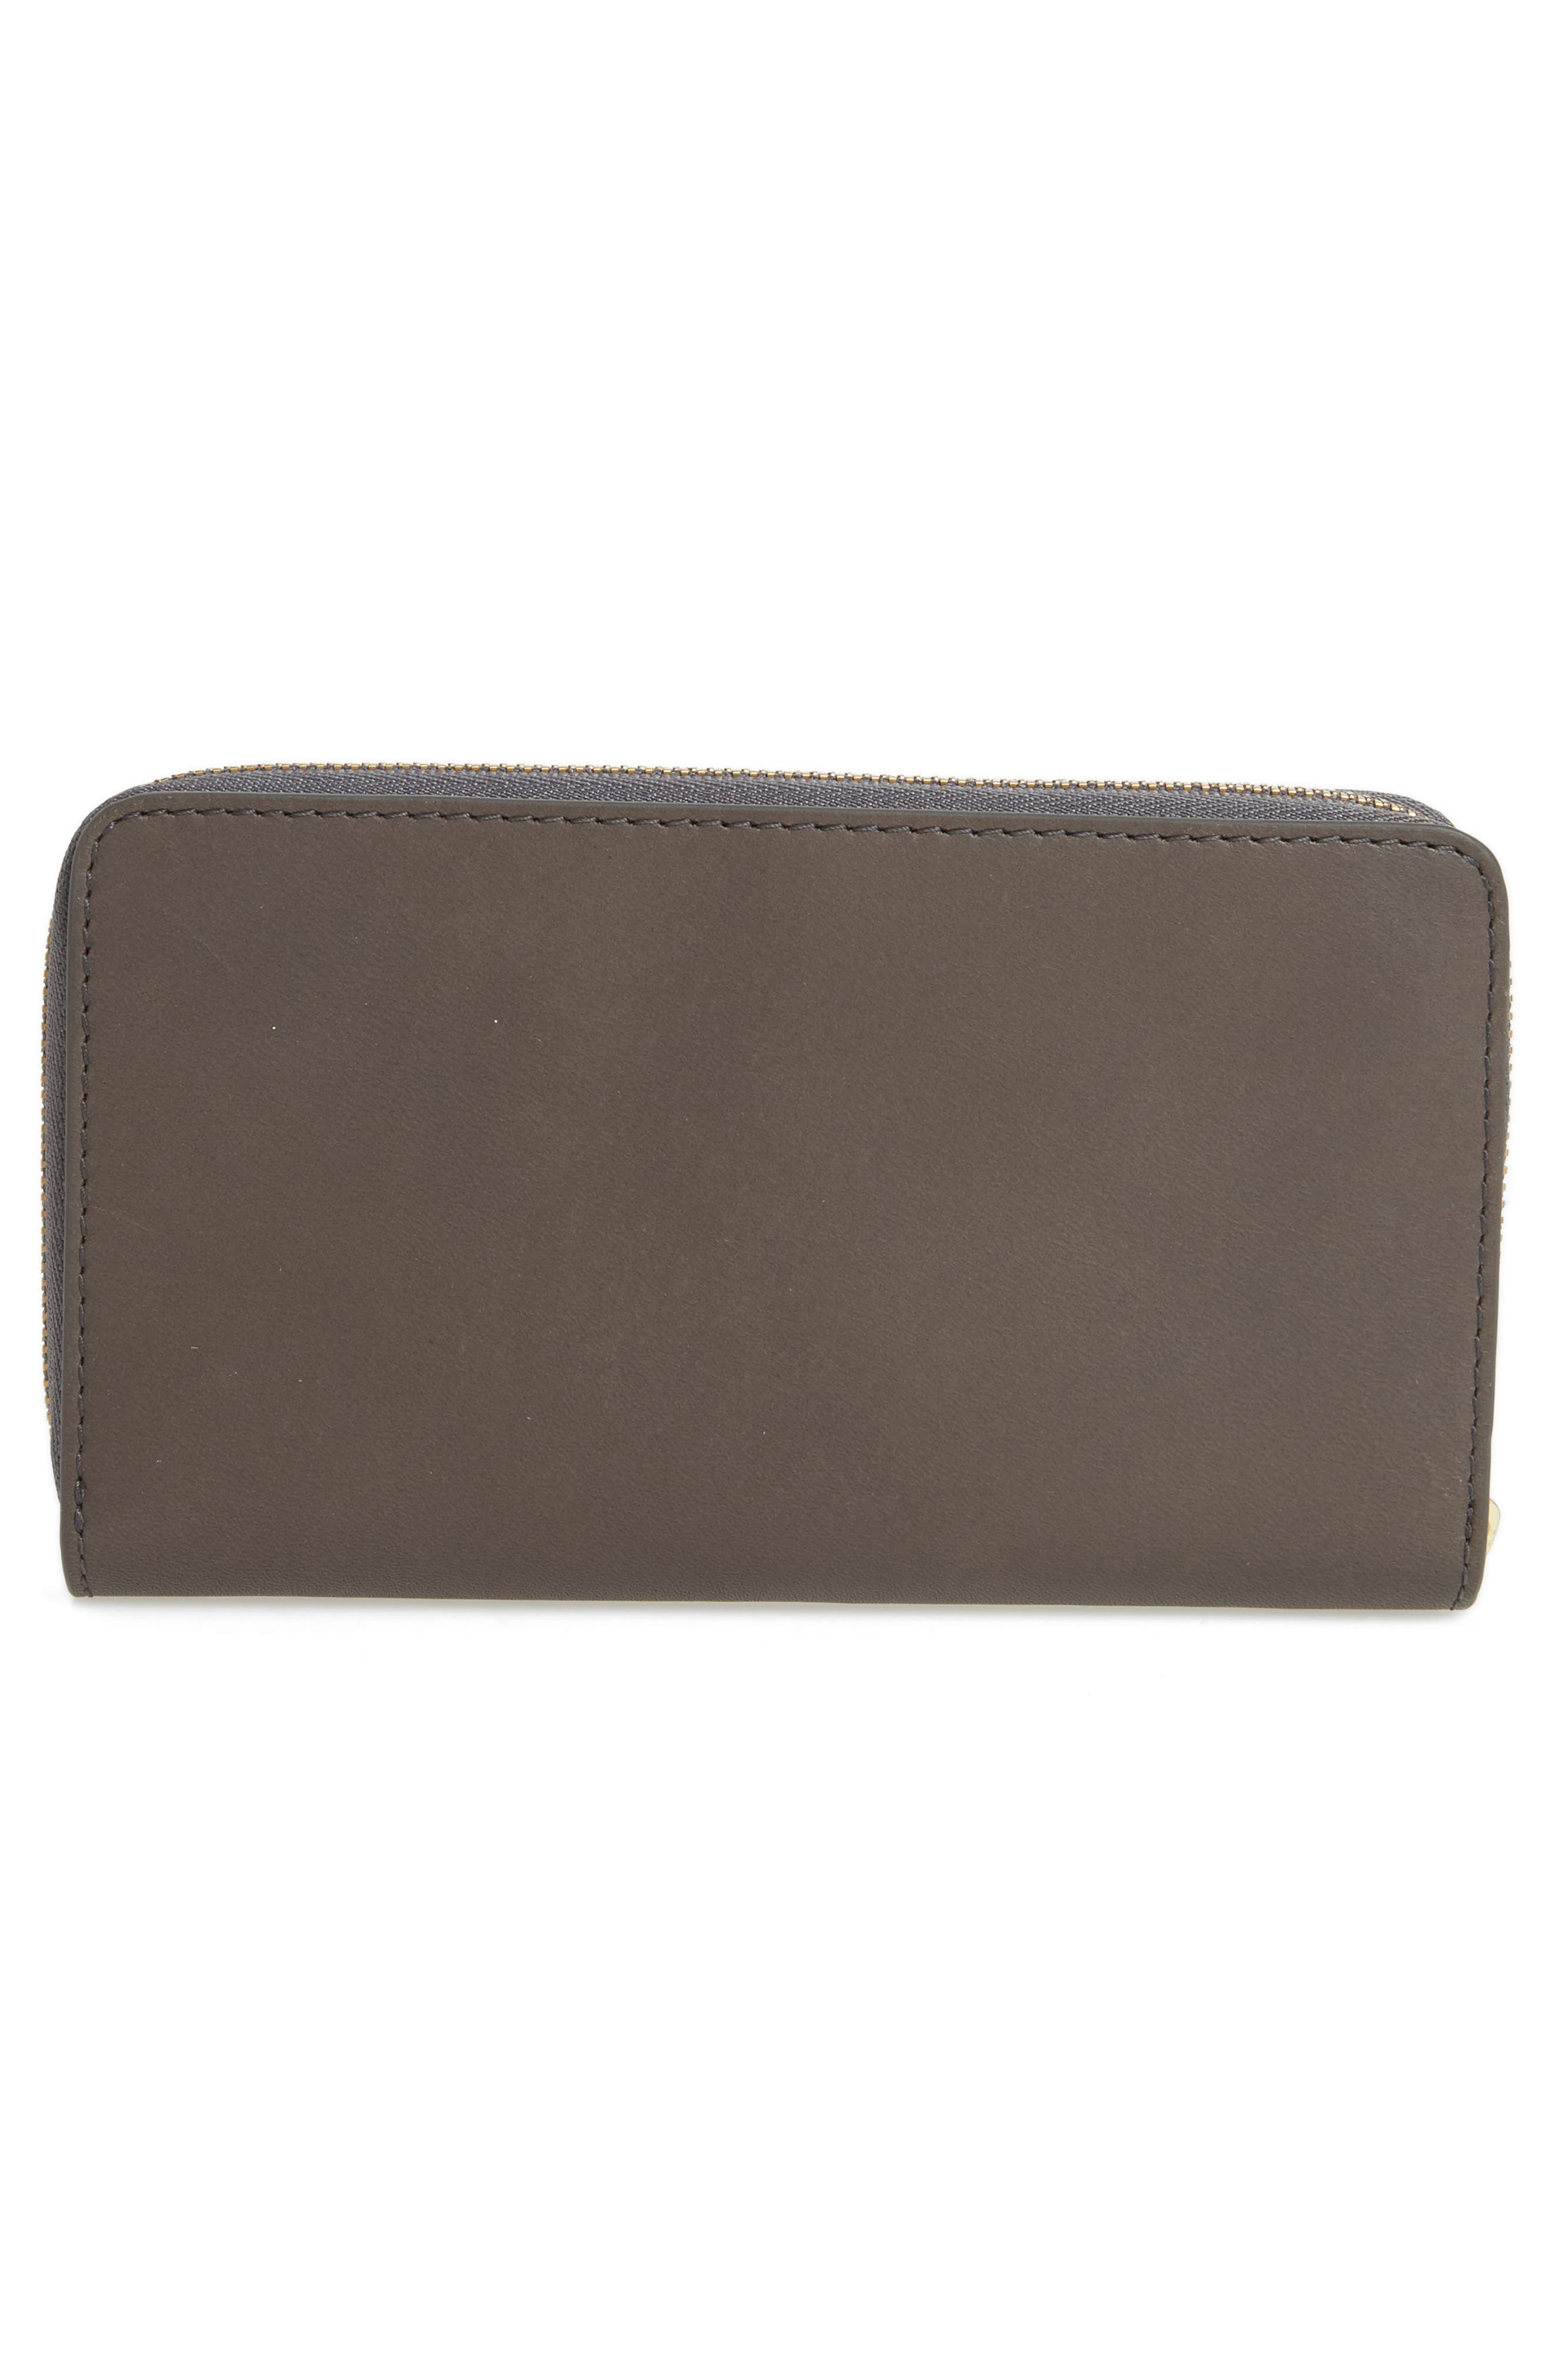 Compact Continental Wallet,                             Alternate thumbnail 4, color,                             020